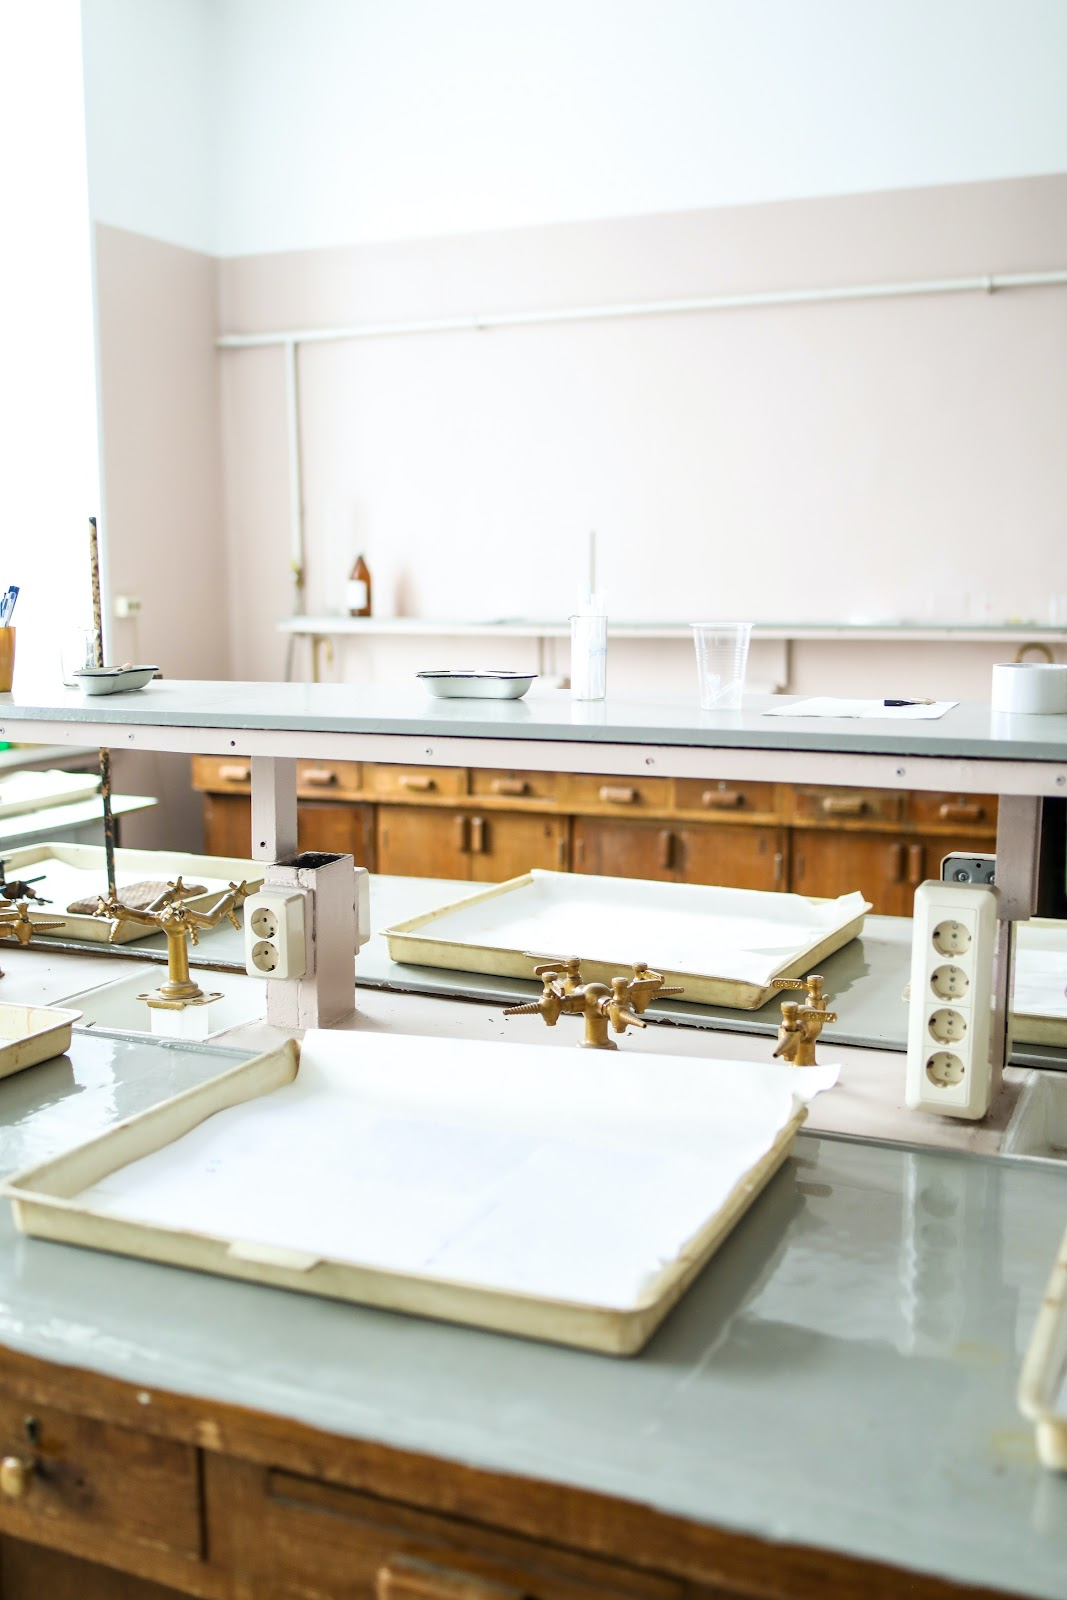 An empty <mark><mark><mark>STEM classroom</mark></mark></mark> is set up with trays, gas burners and outlets.